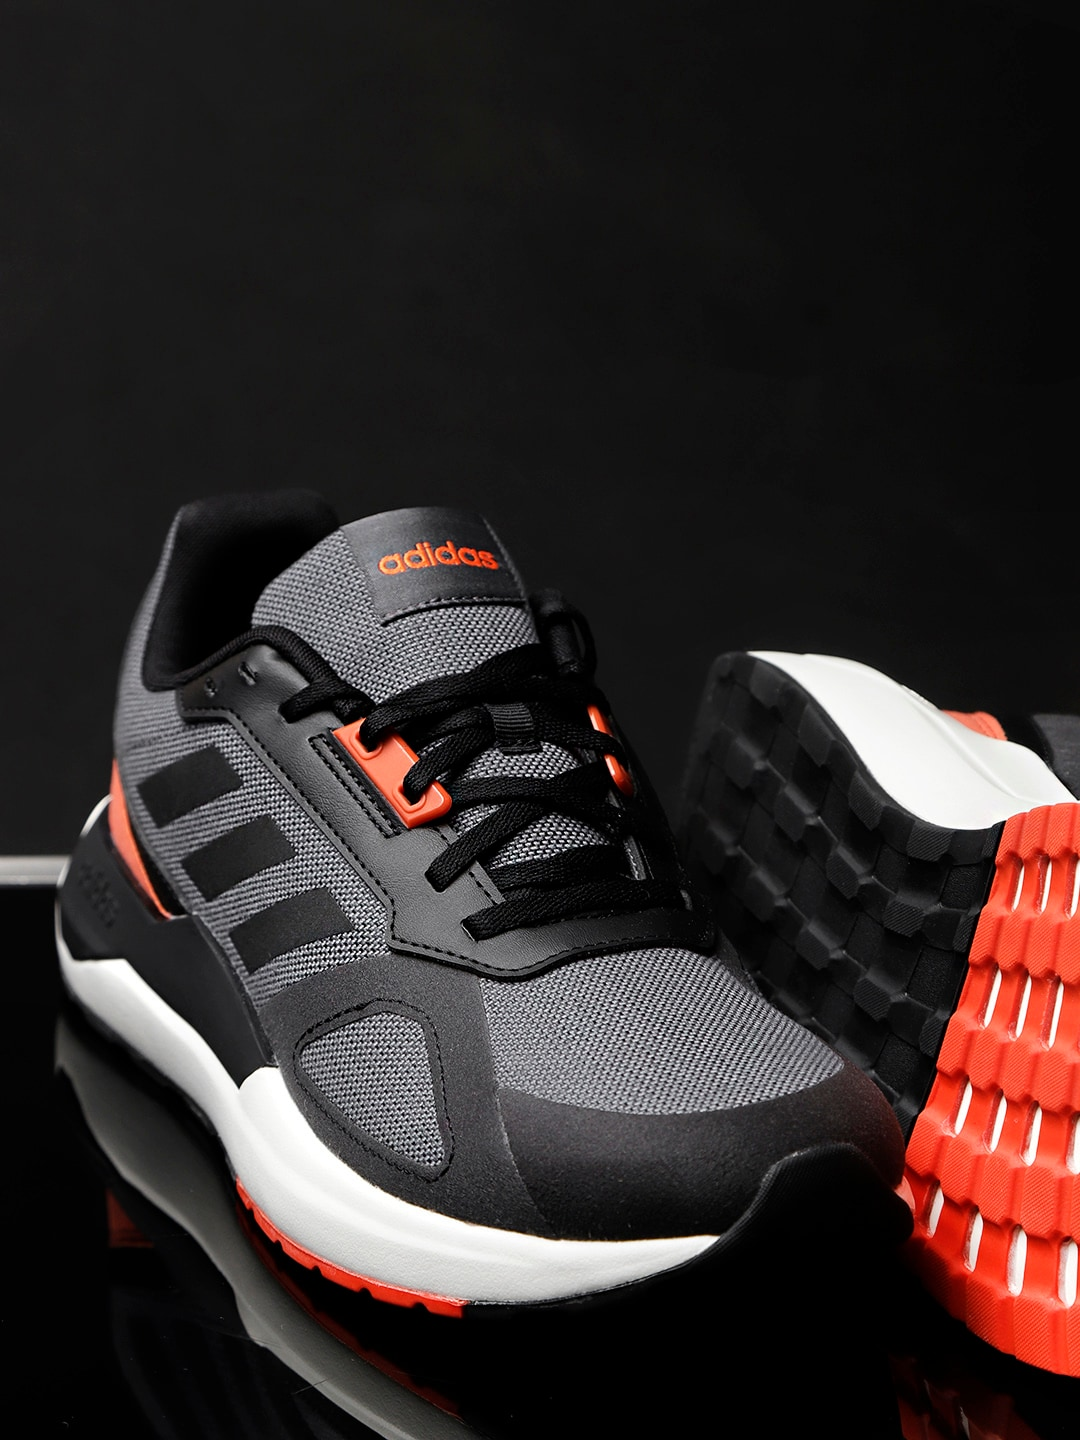 best service c383b 0900b Eors18 Running Shoes 848987 - Buy Eors18 Running Shoes 848987 online in  India